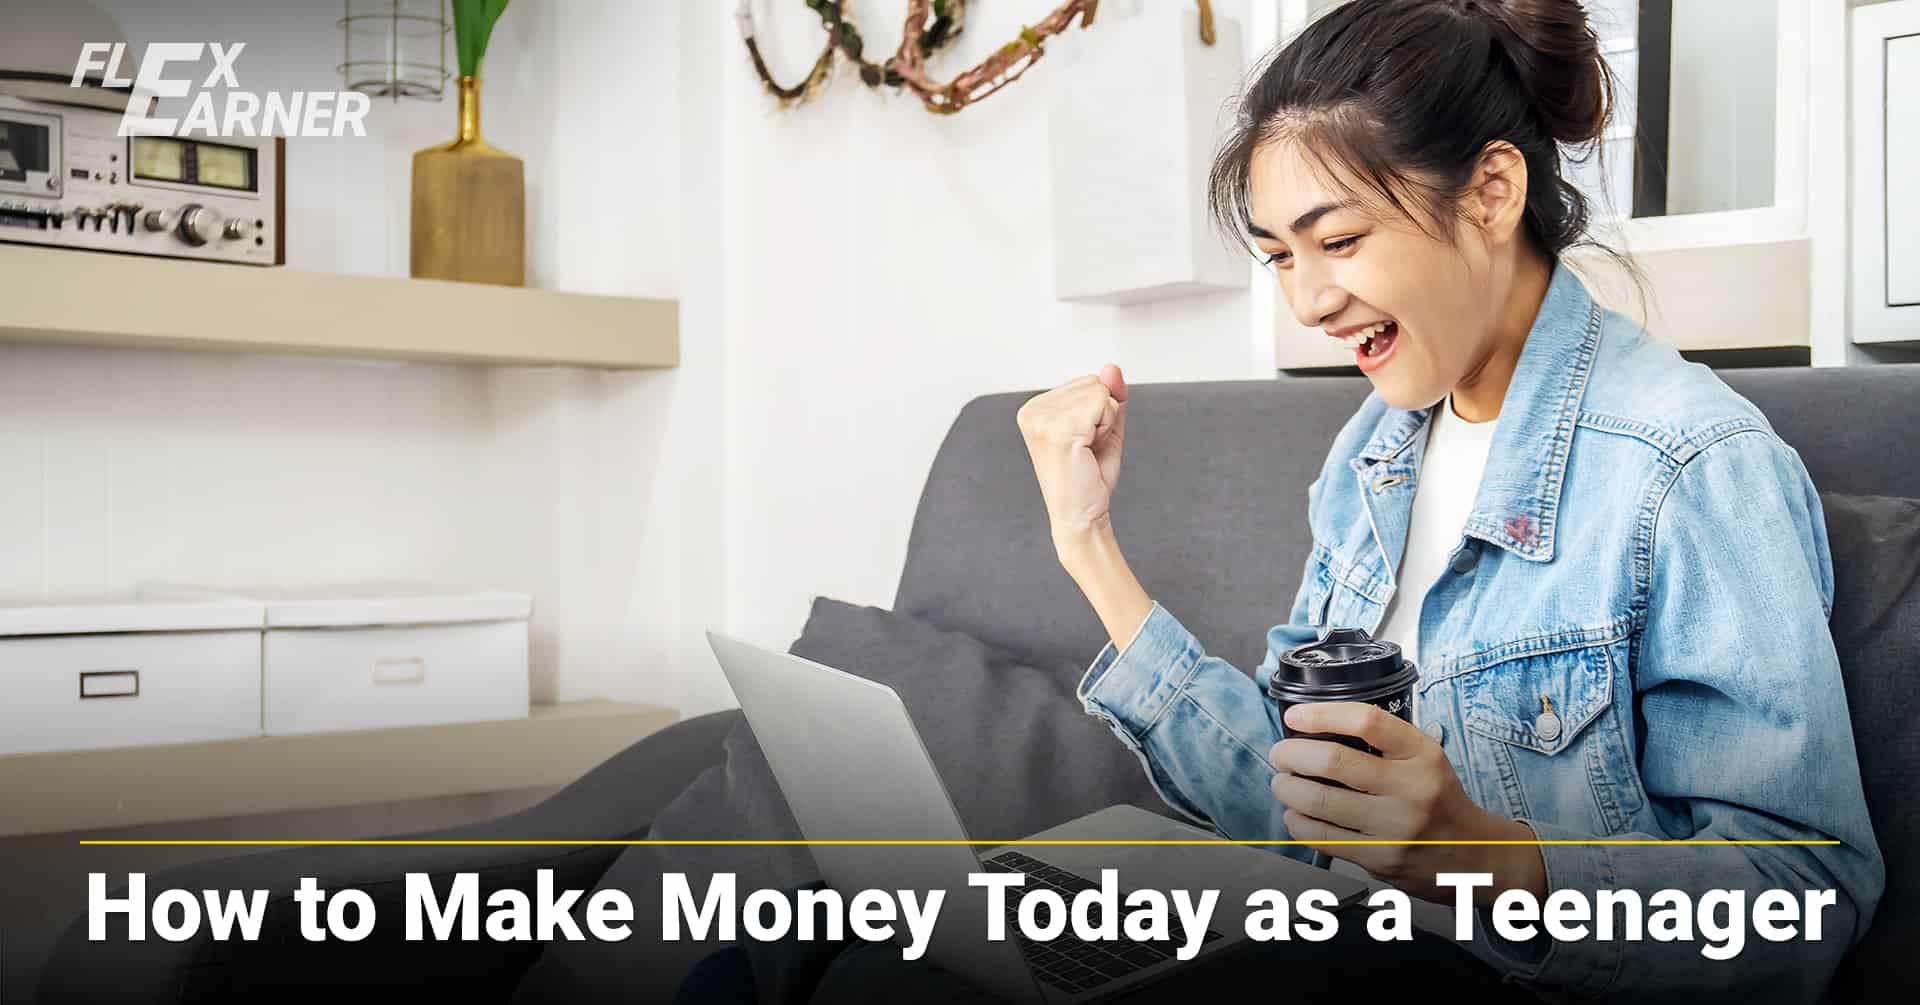 How to Make Money Today as a Teenager